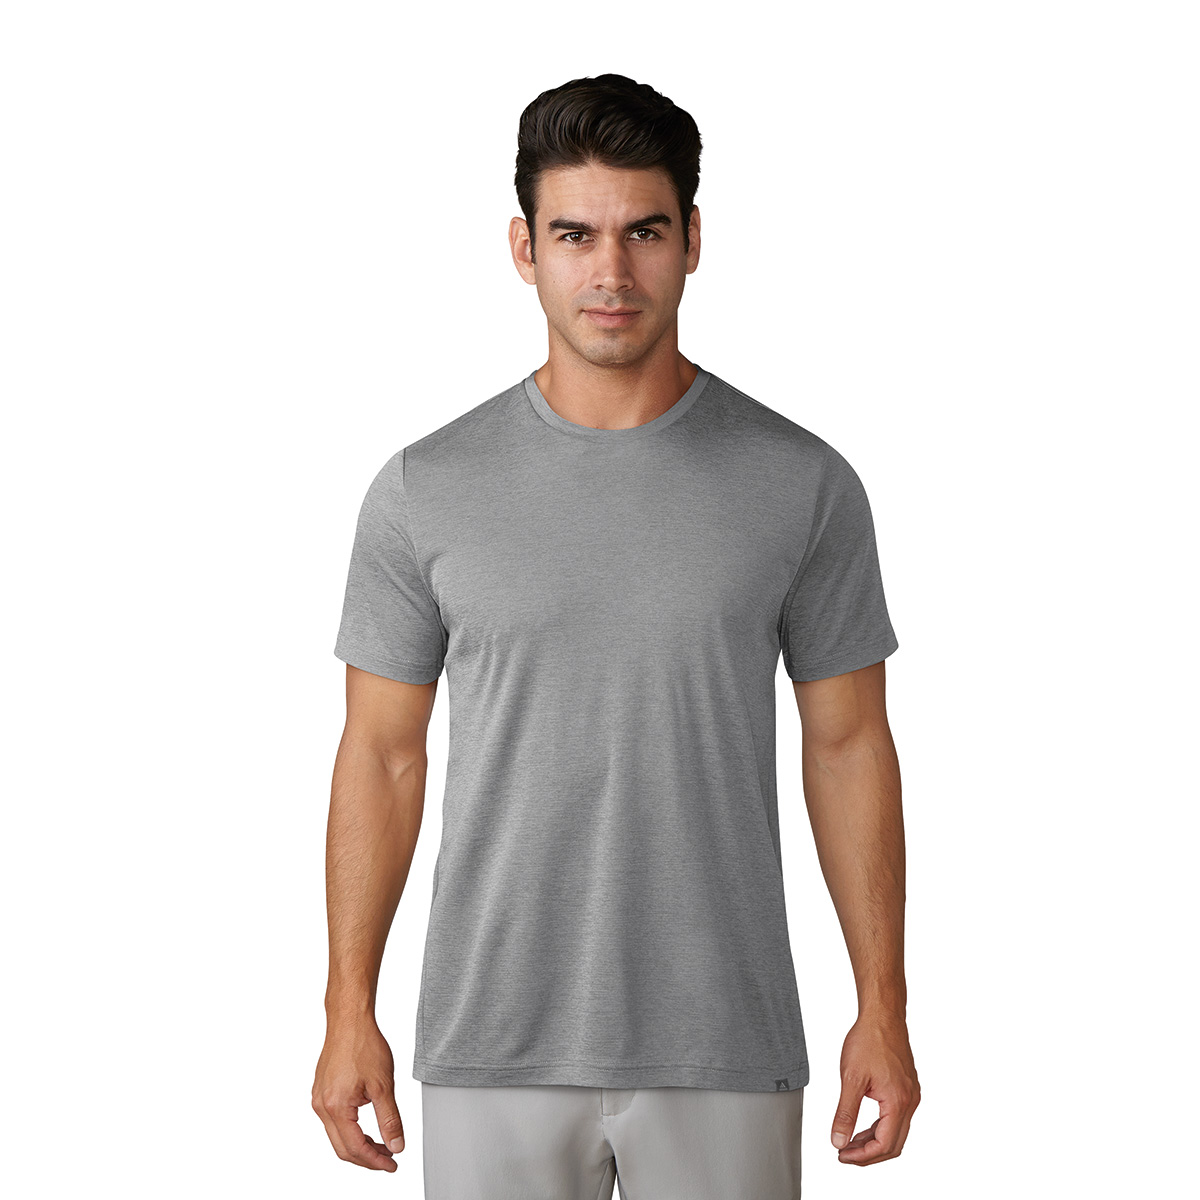 Adidas Men's Adicross No-Show Range T-Shirt